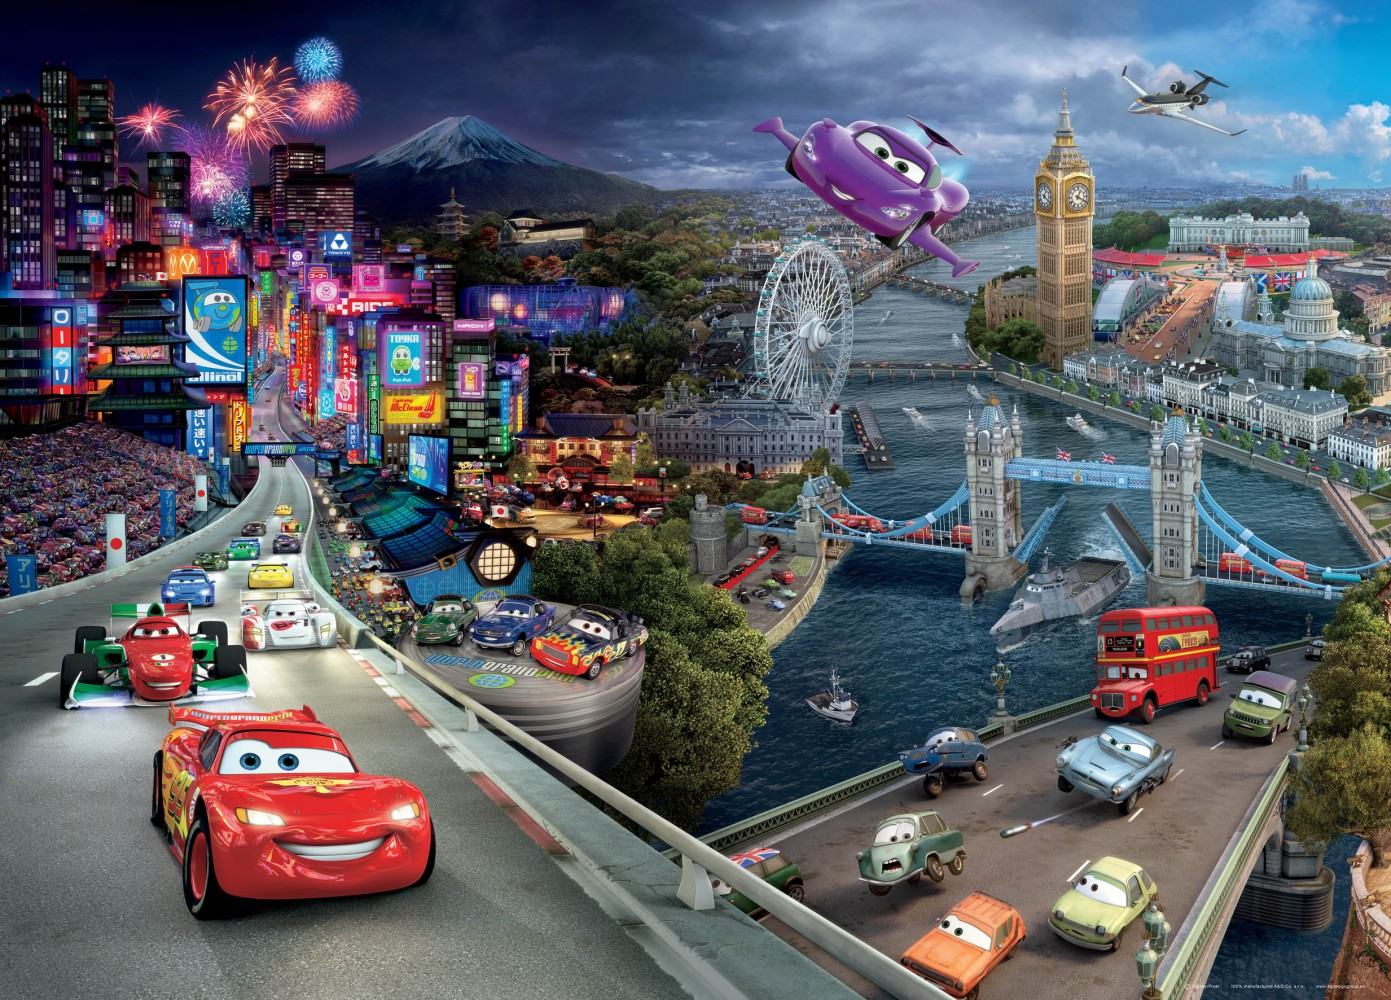 Xxl poster wall mural wallpaper disney pixxar cars 2 cars for Disney cars mural uk